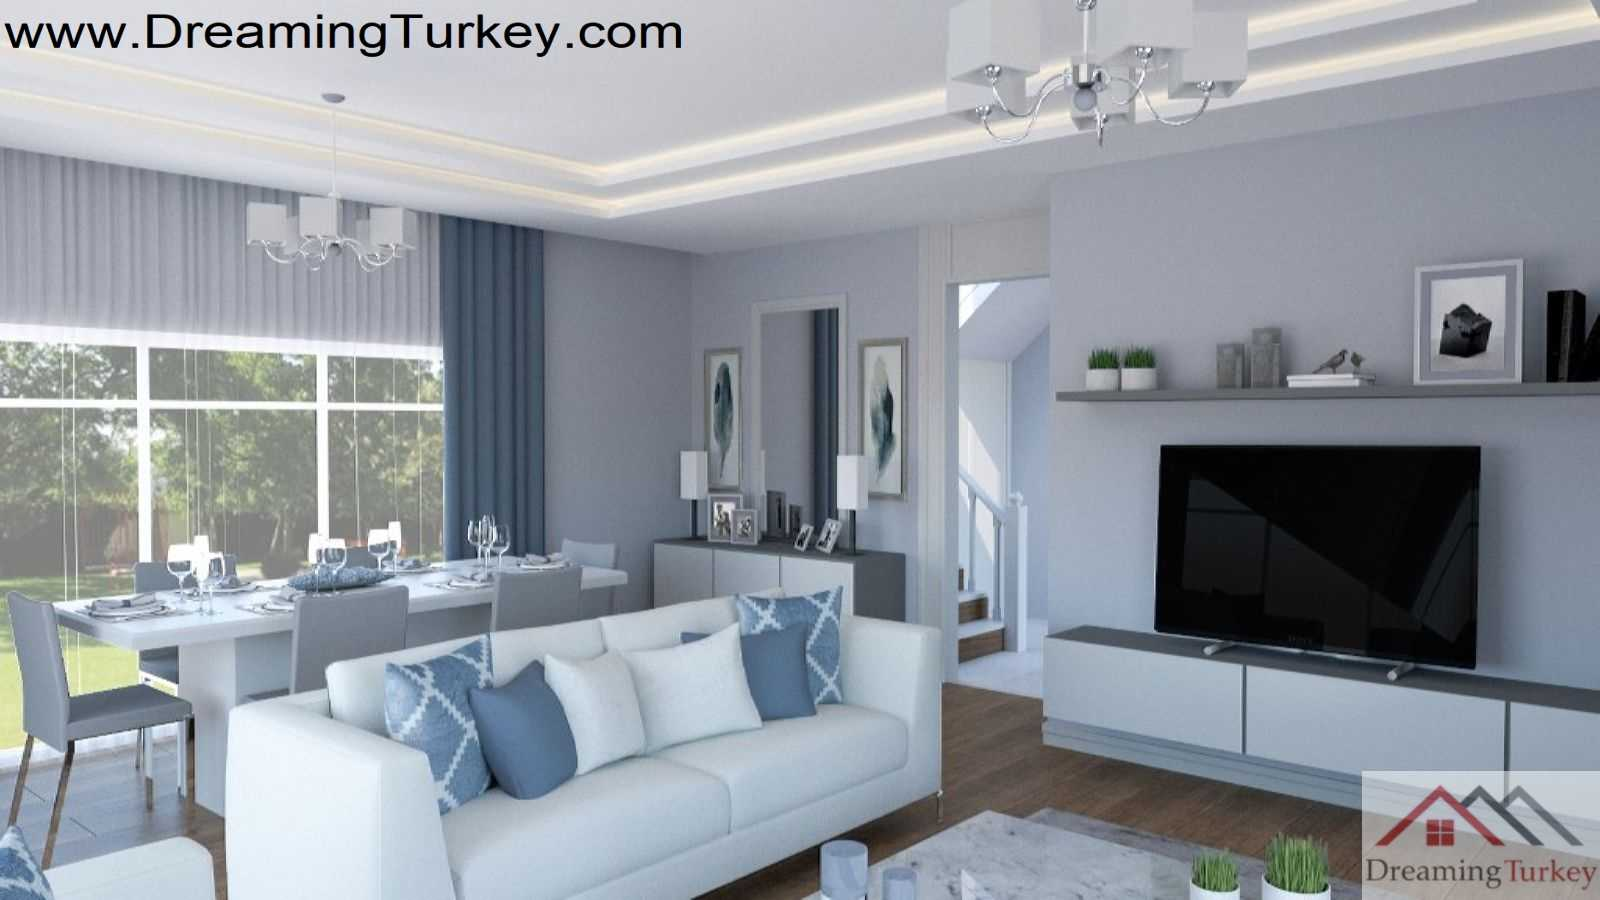 4-Bedroom Triplex Villa with 2 Living Rooms in Istanbul